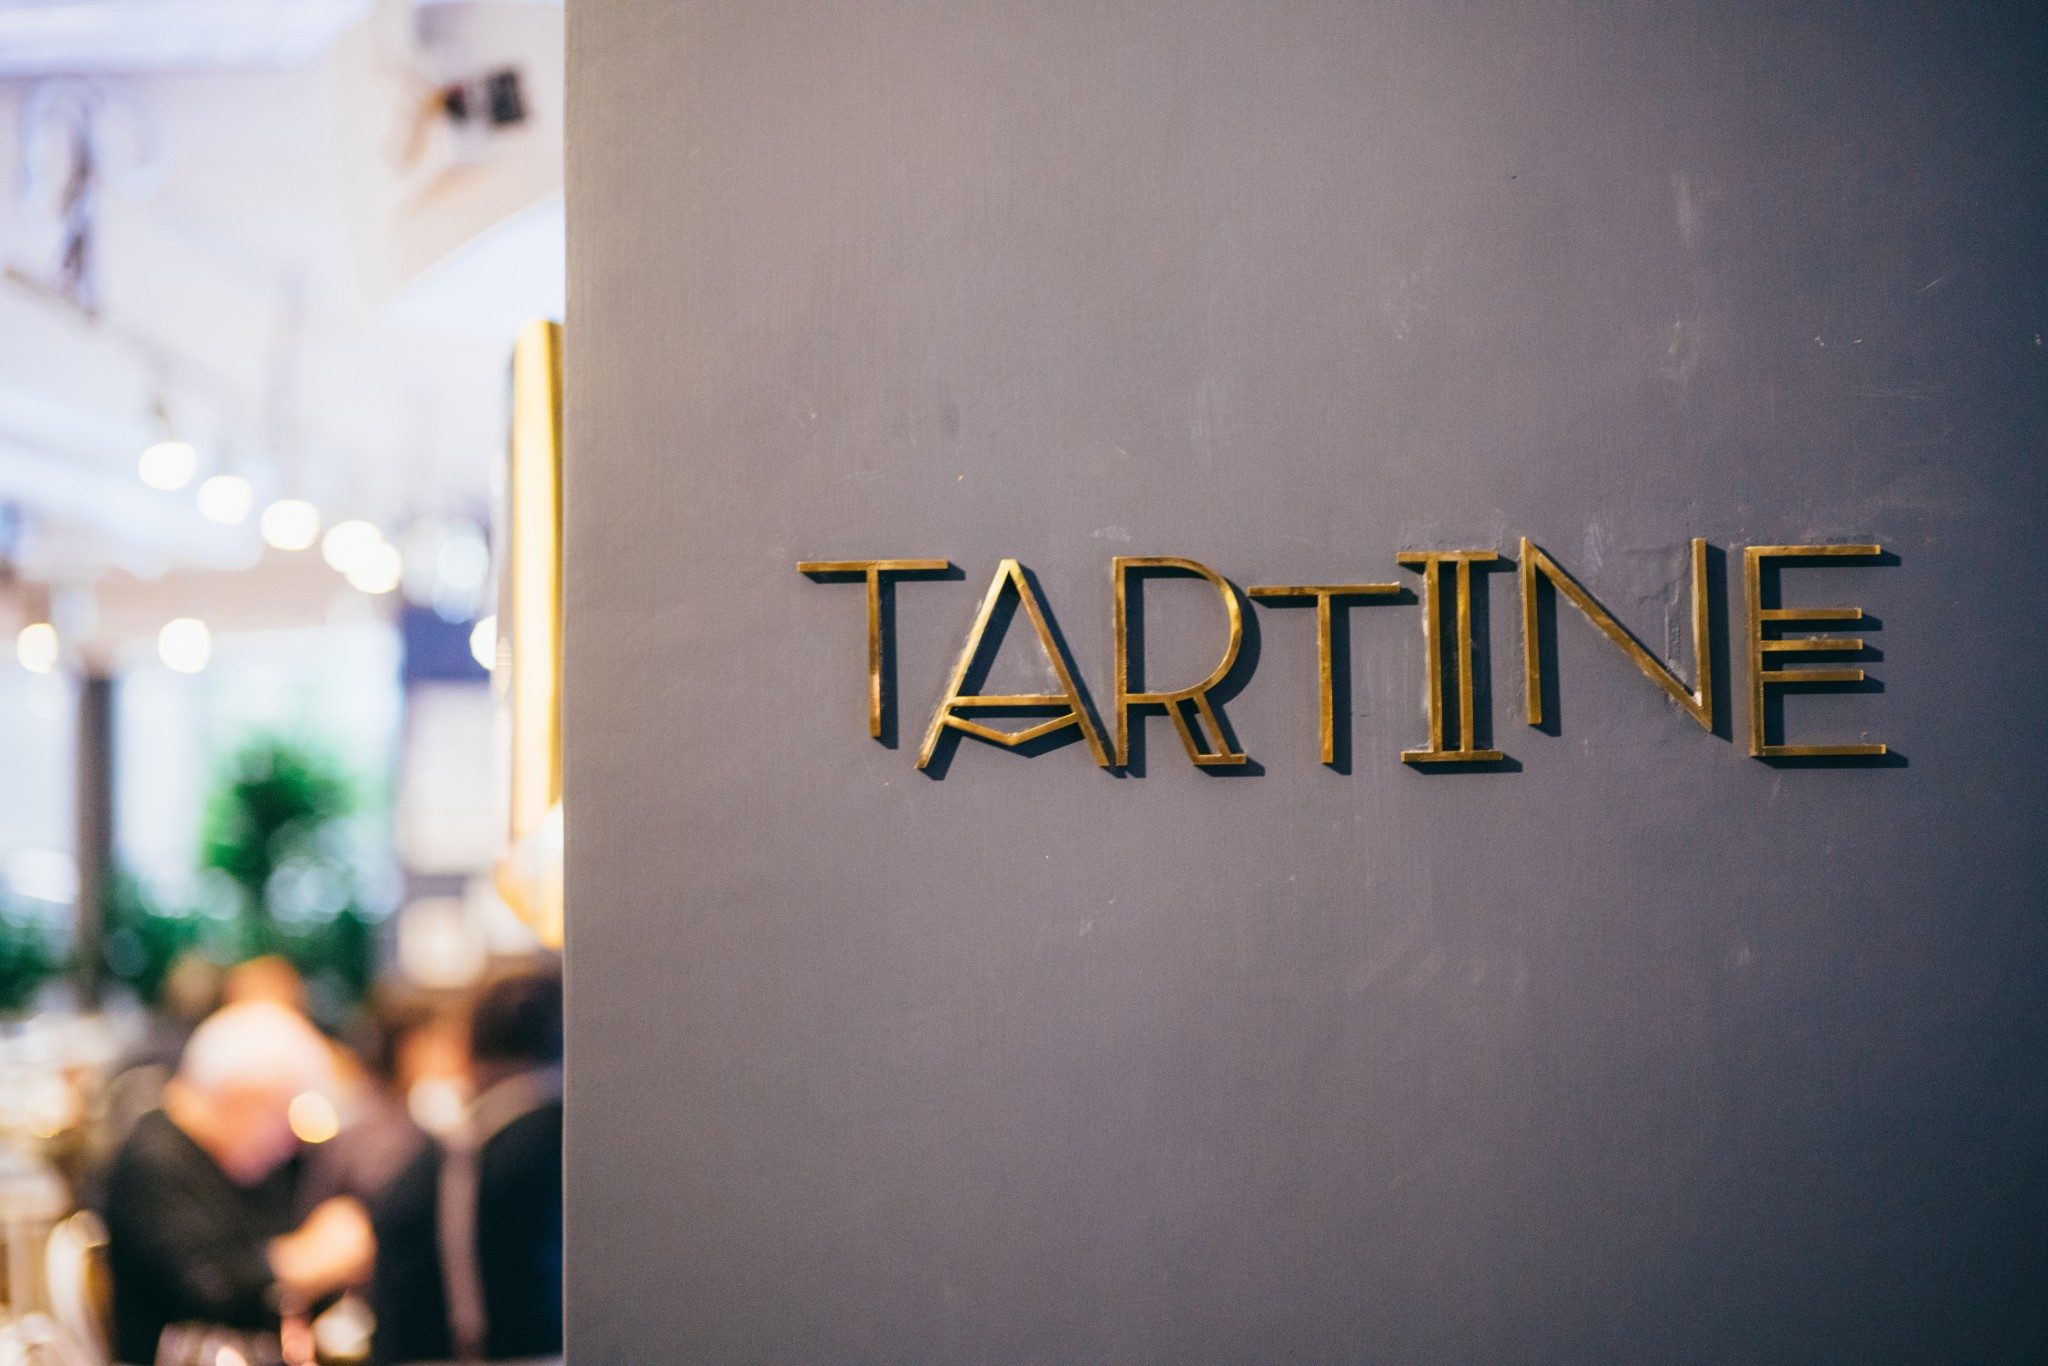 Nightime Vibes at Tartine12